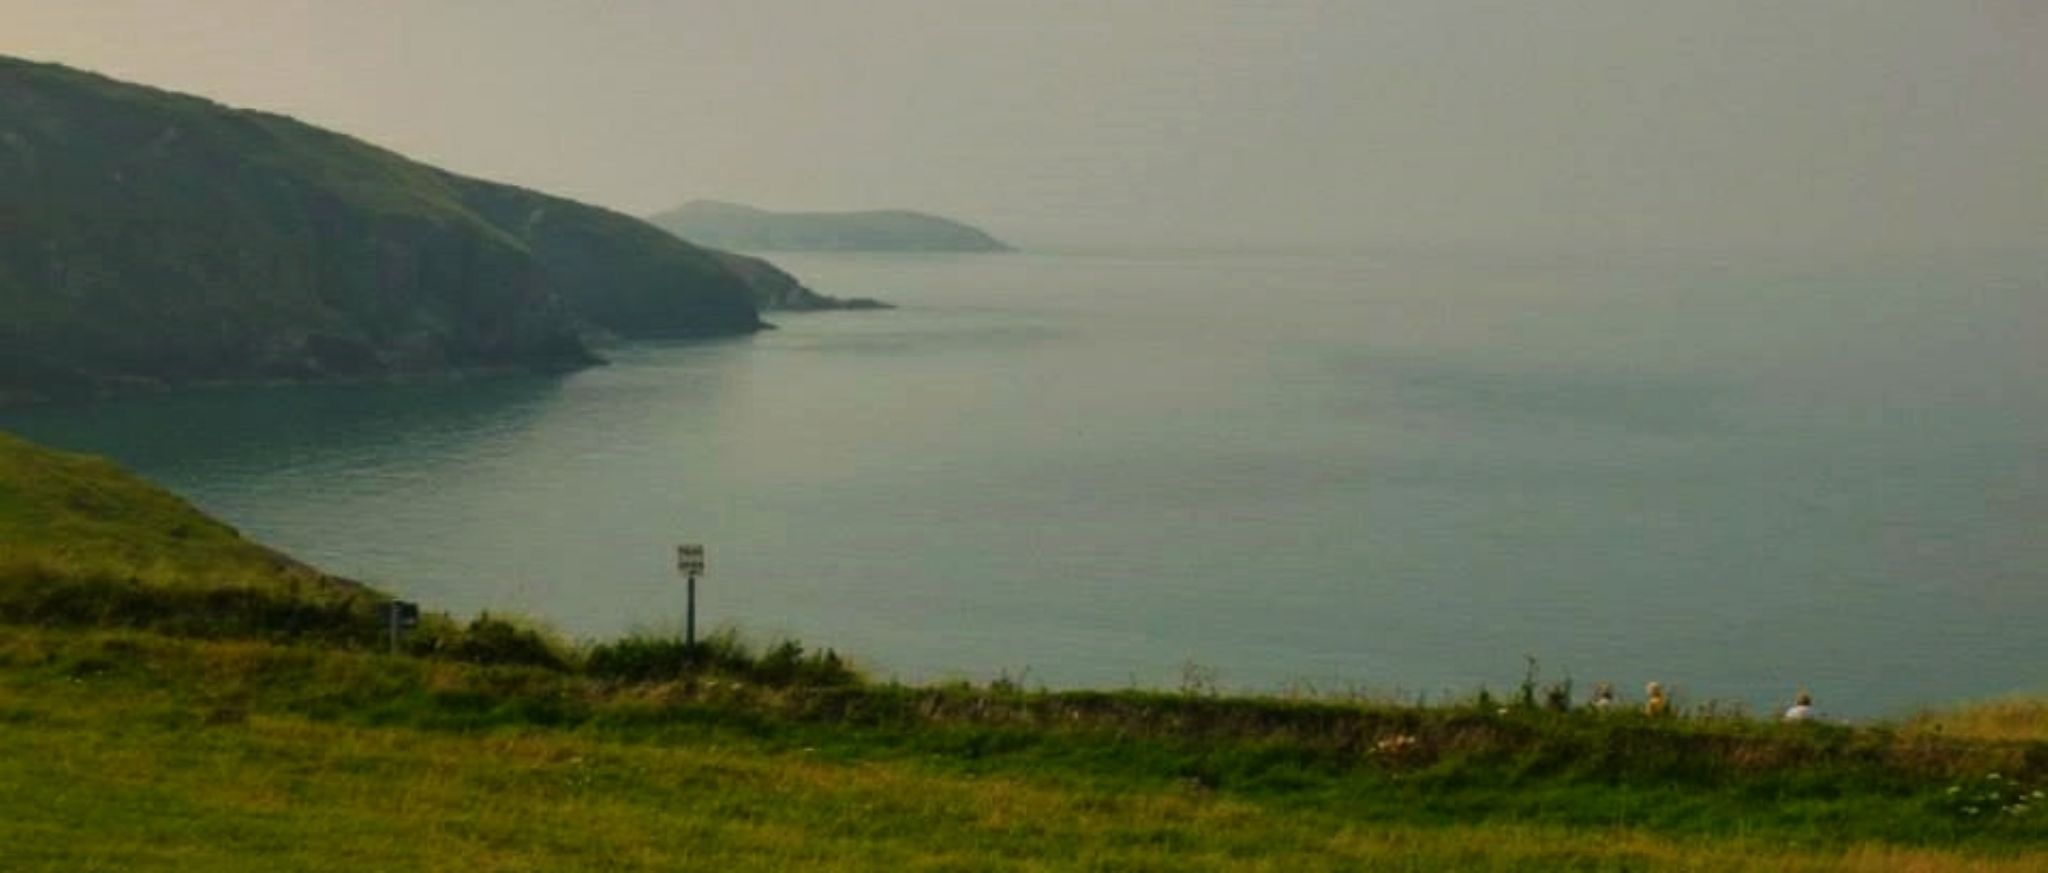 mwnt ceredigion wales by chris.adams.3557